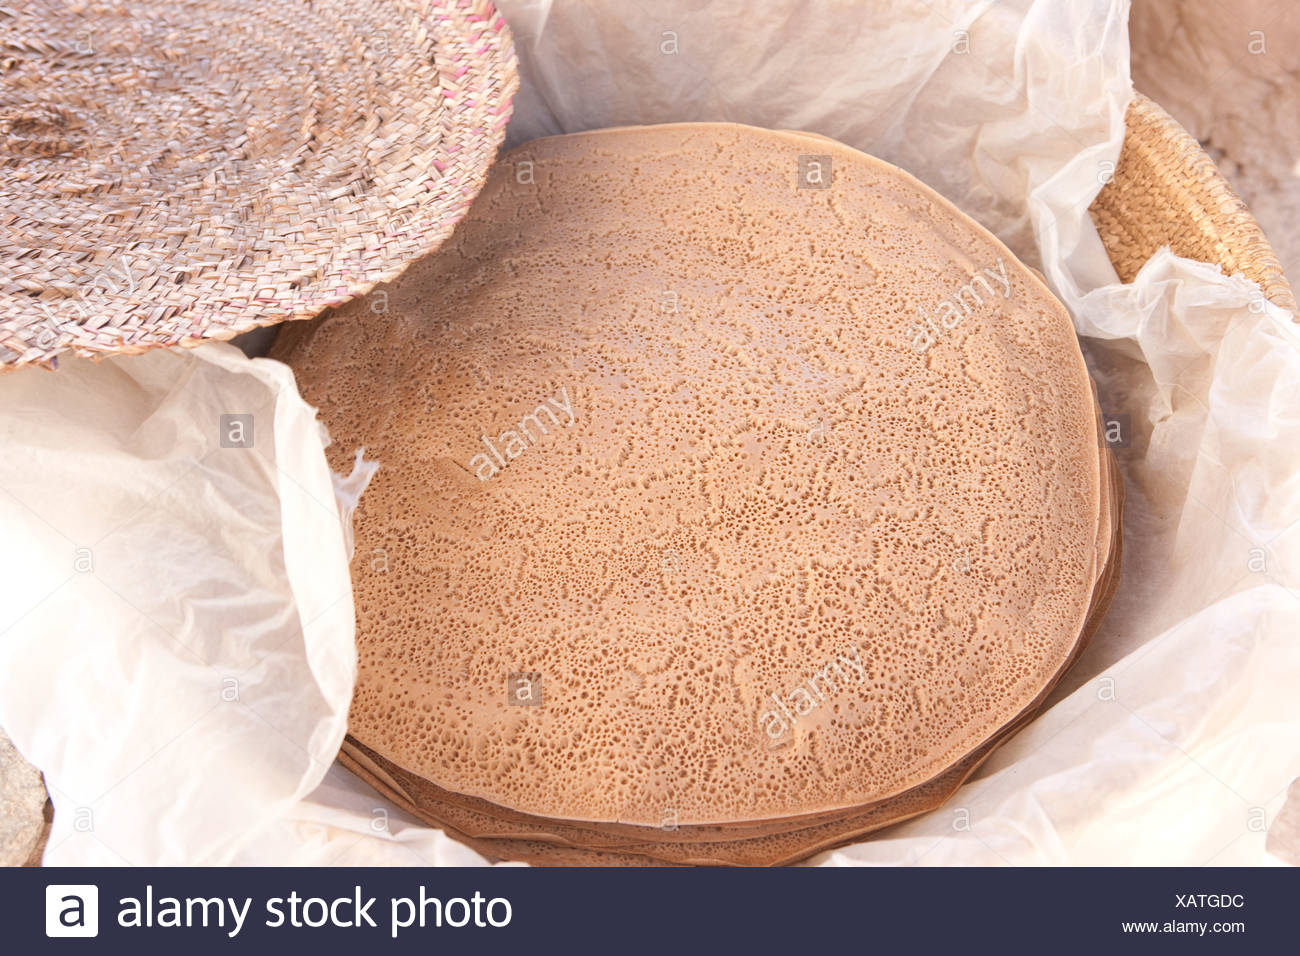 Production, Achievement, court, dish, Injera food, Food, traditionally, Ethiopia, - Stock Image